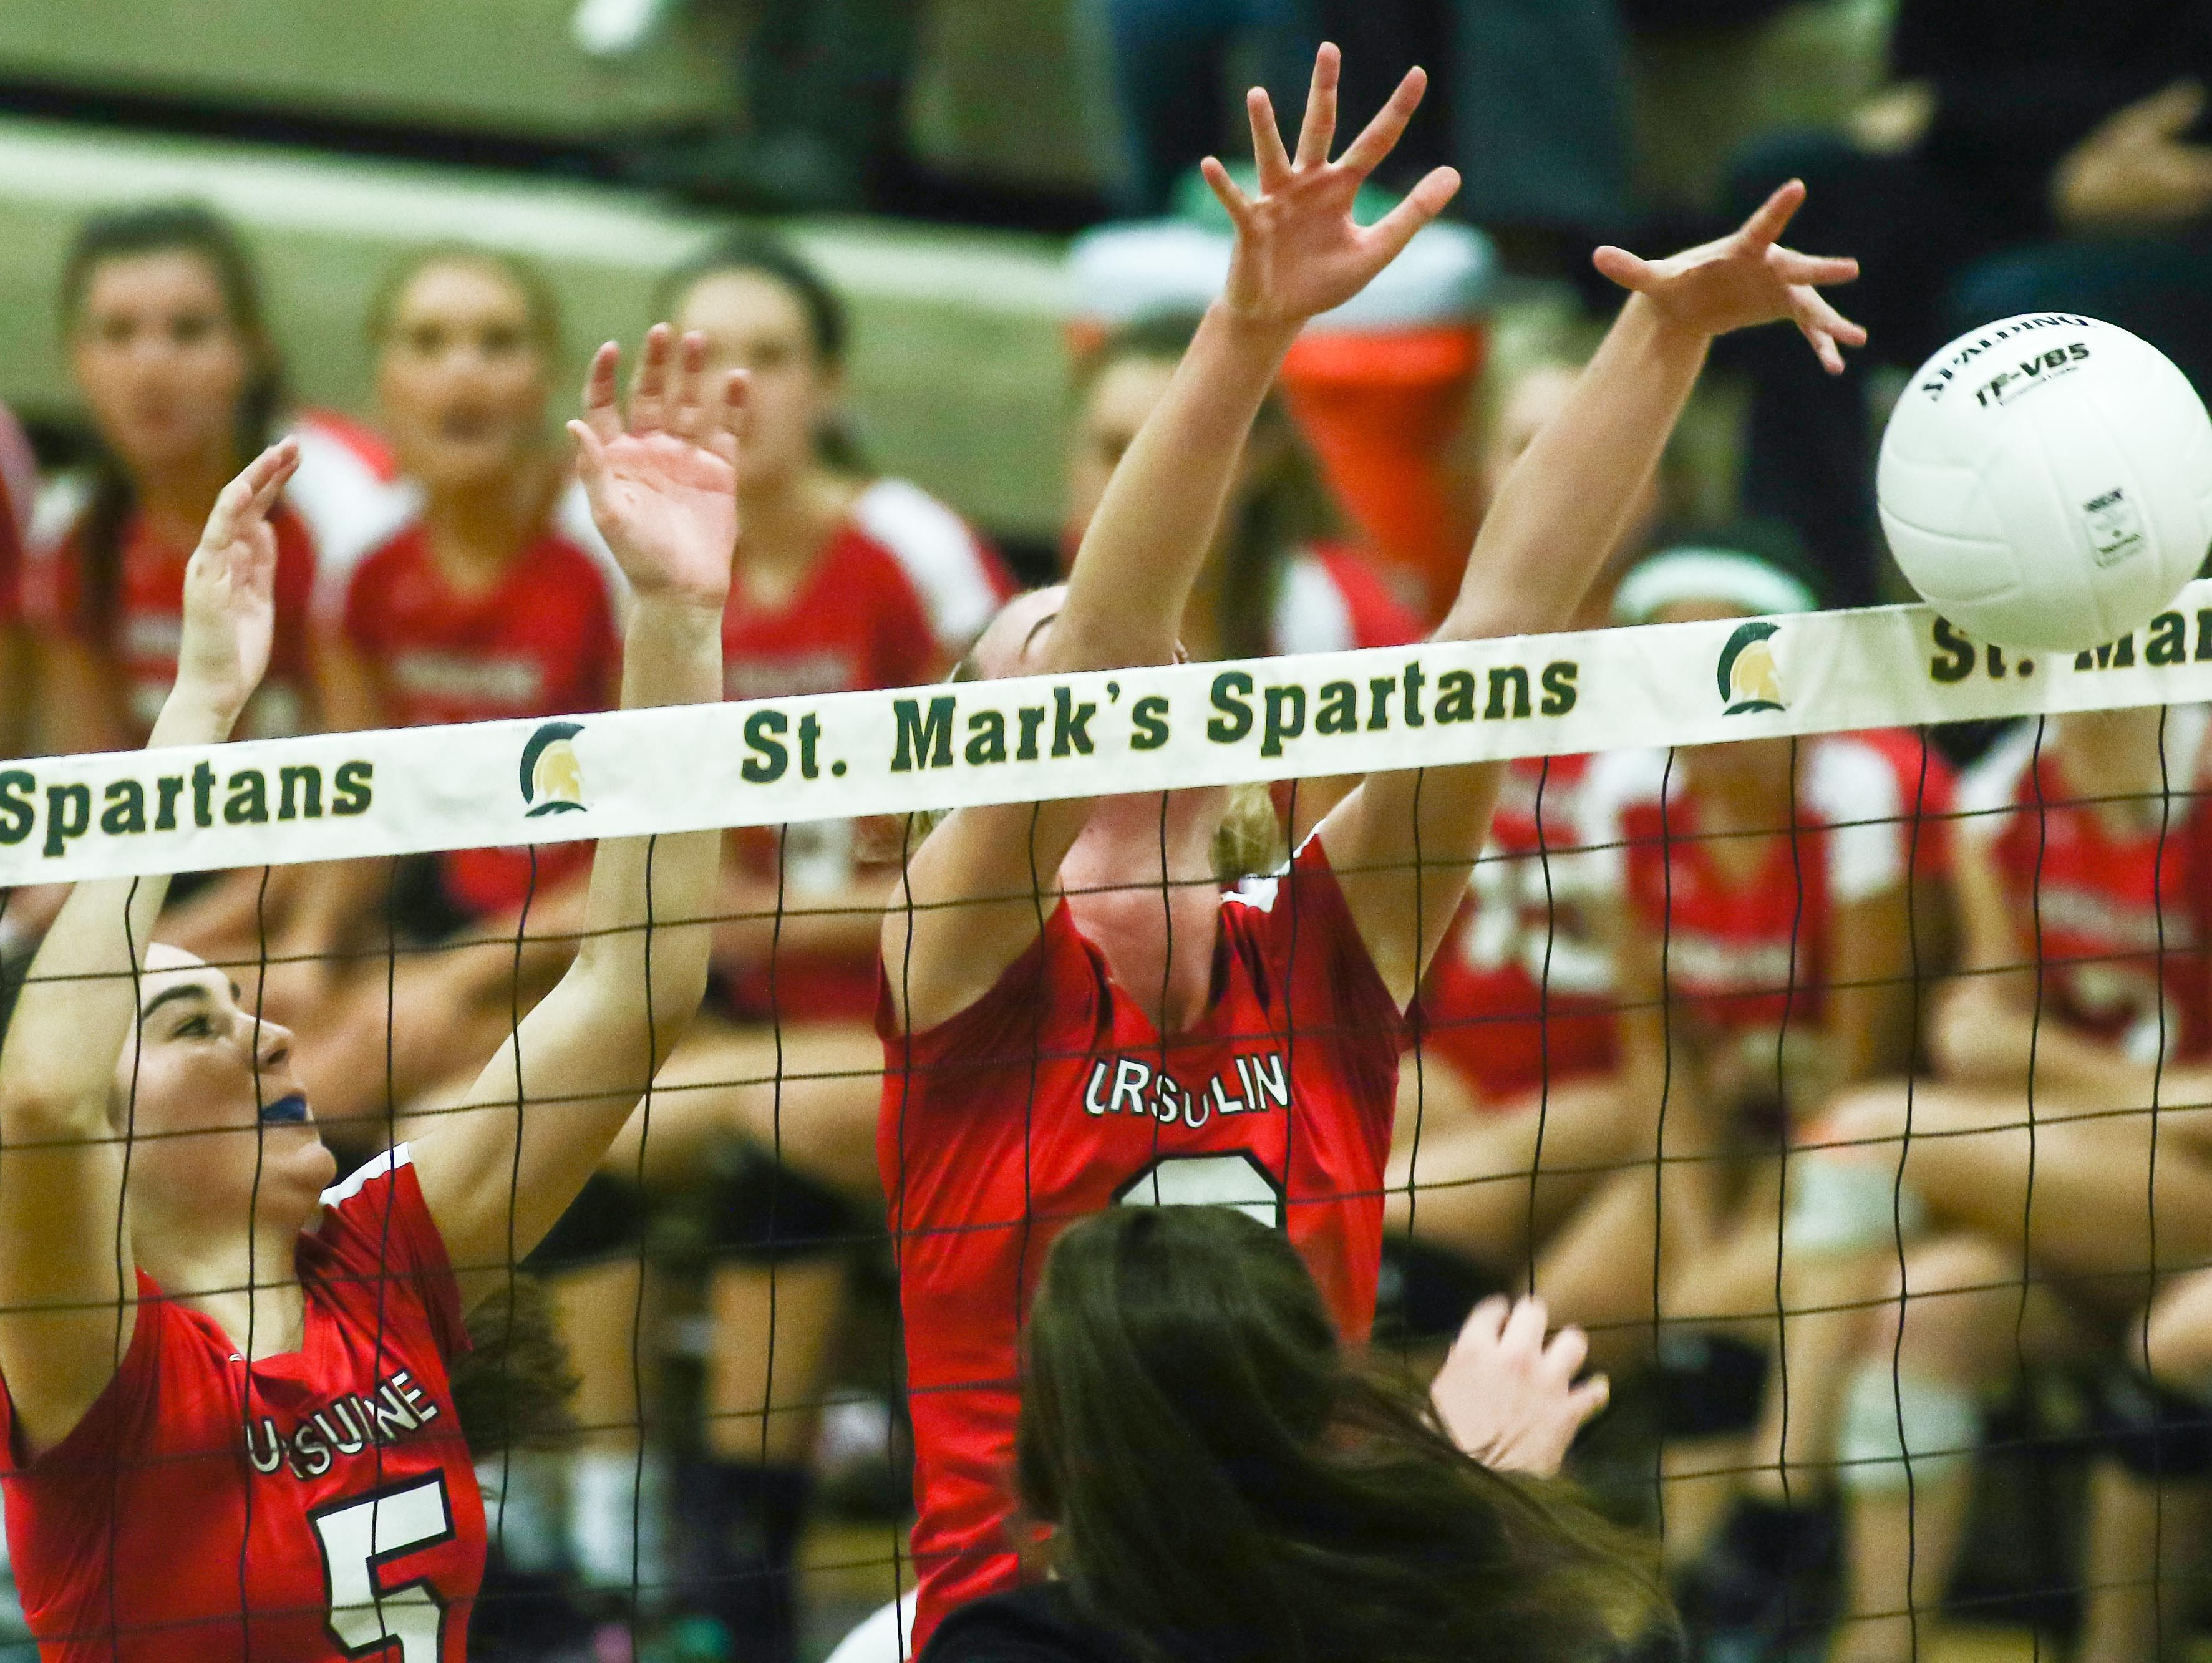 Ursuline's Corinne Furey (6), right, jumps up to block a spike during a DIAA Girls Volleyball quarterfinals match between Padua and Ursuline on Tuesday at St. Mark's High School in Wilmington.